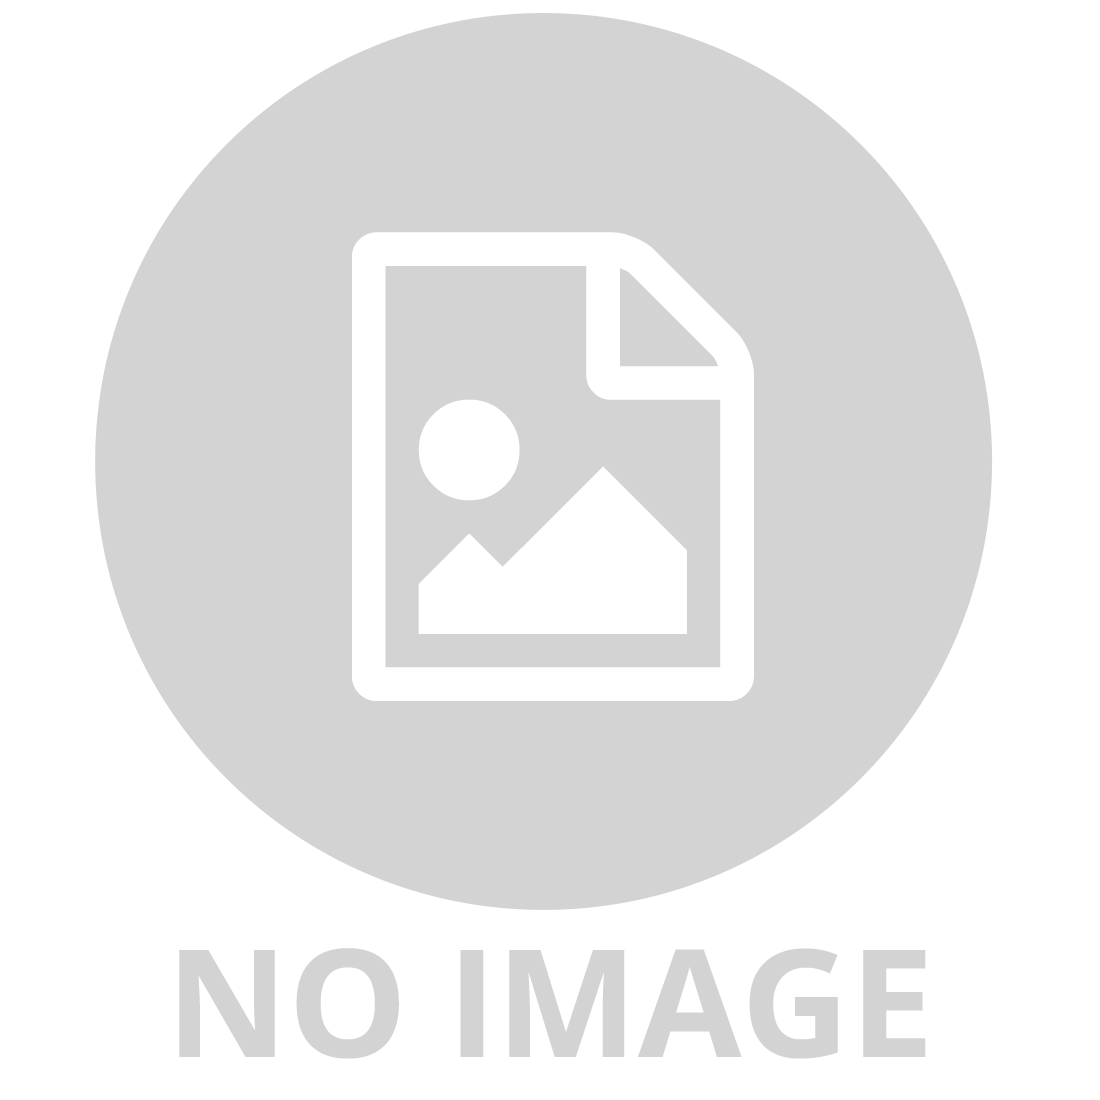 DOLLS WORLD WOODEN ROCKING CRADLE